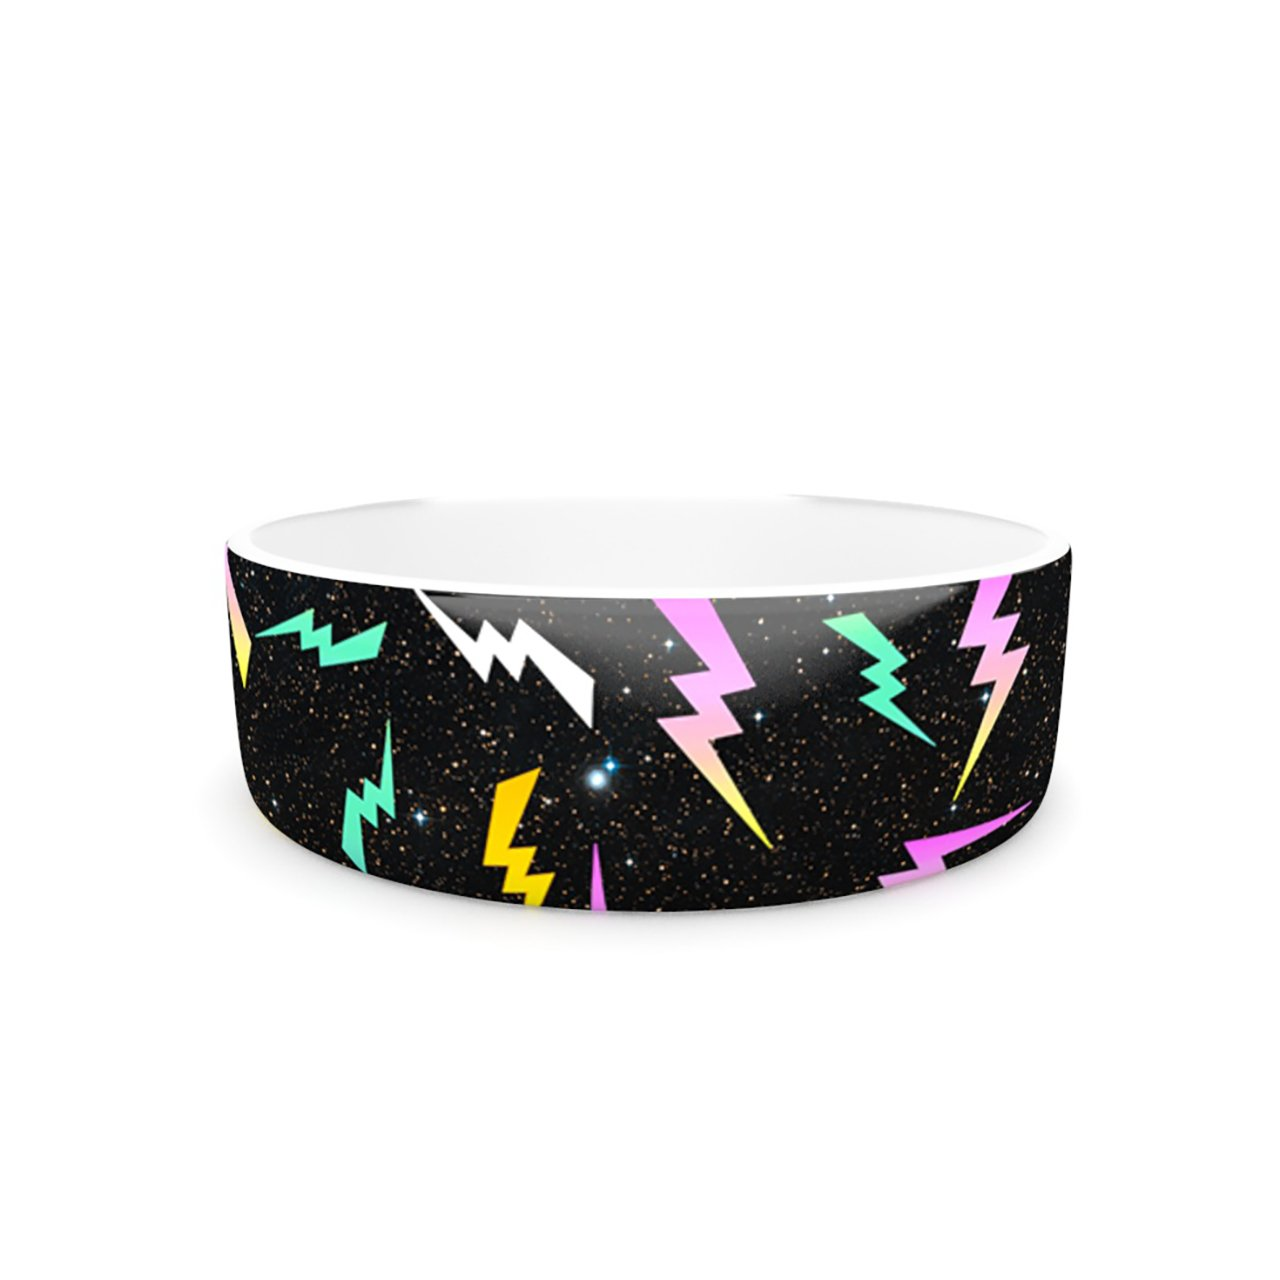 Kess InHouse Danny Ivan Bolt Pattern  Pet Bowl, 7-Inch, Black Lightning